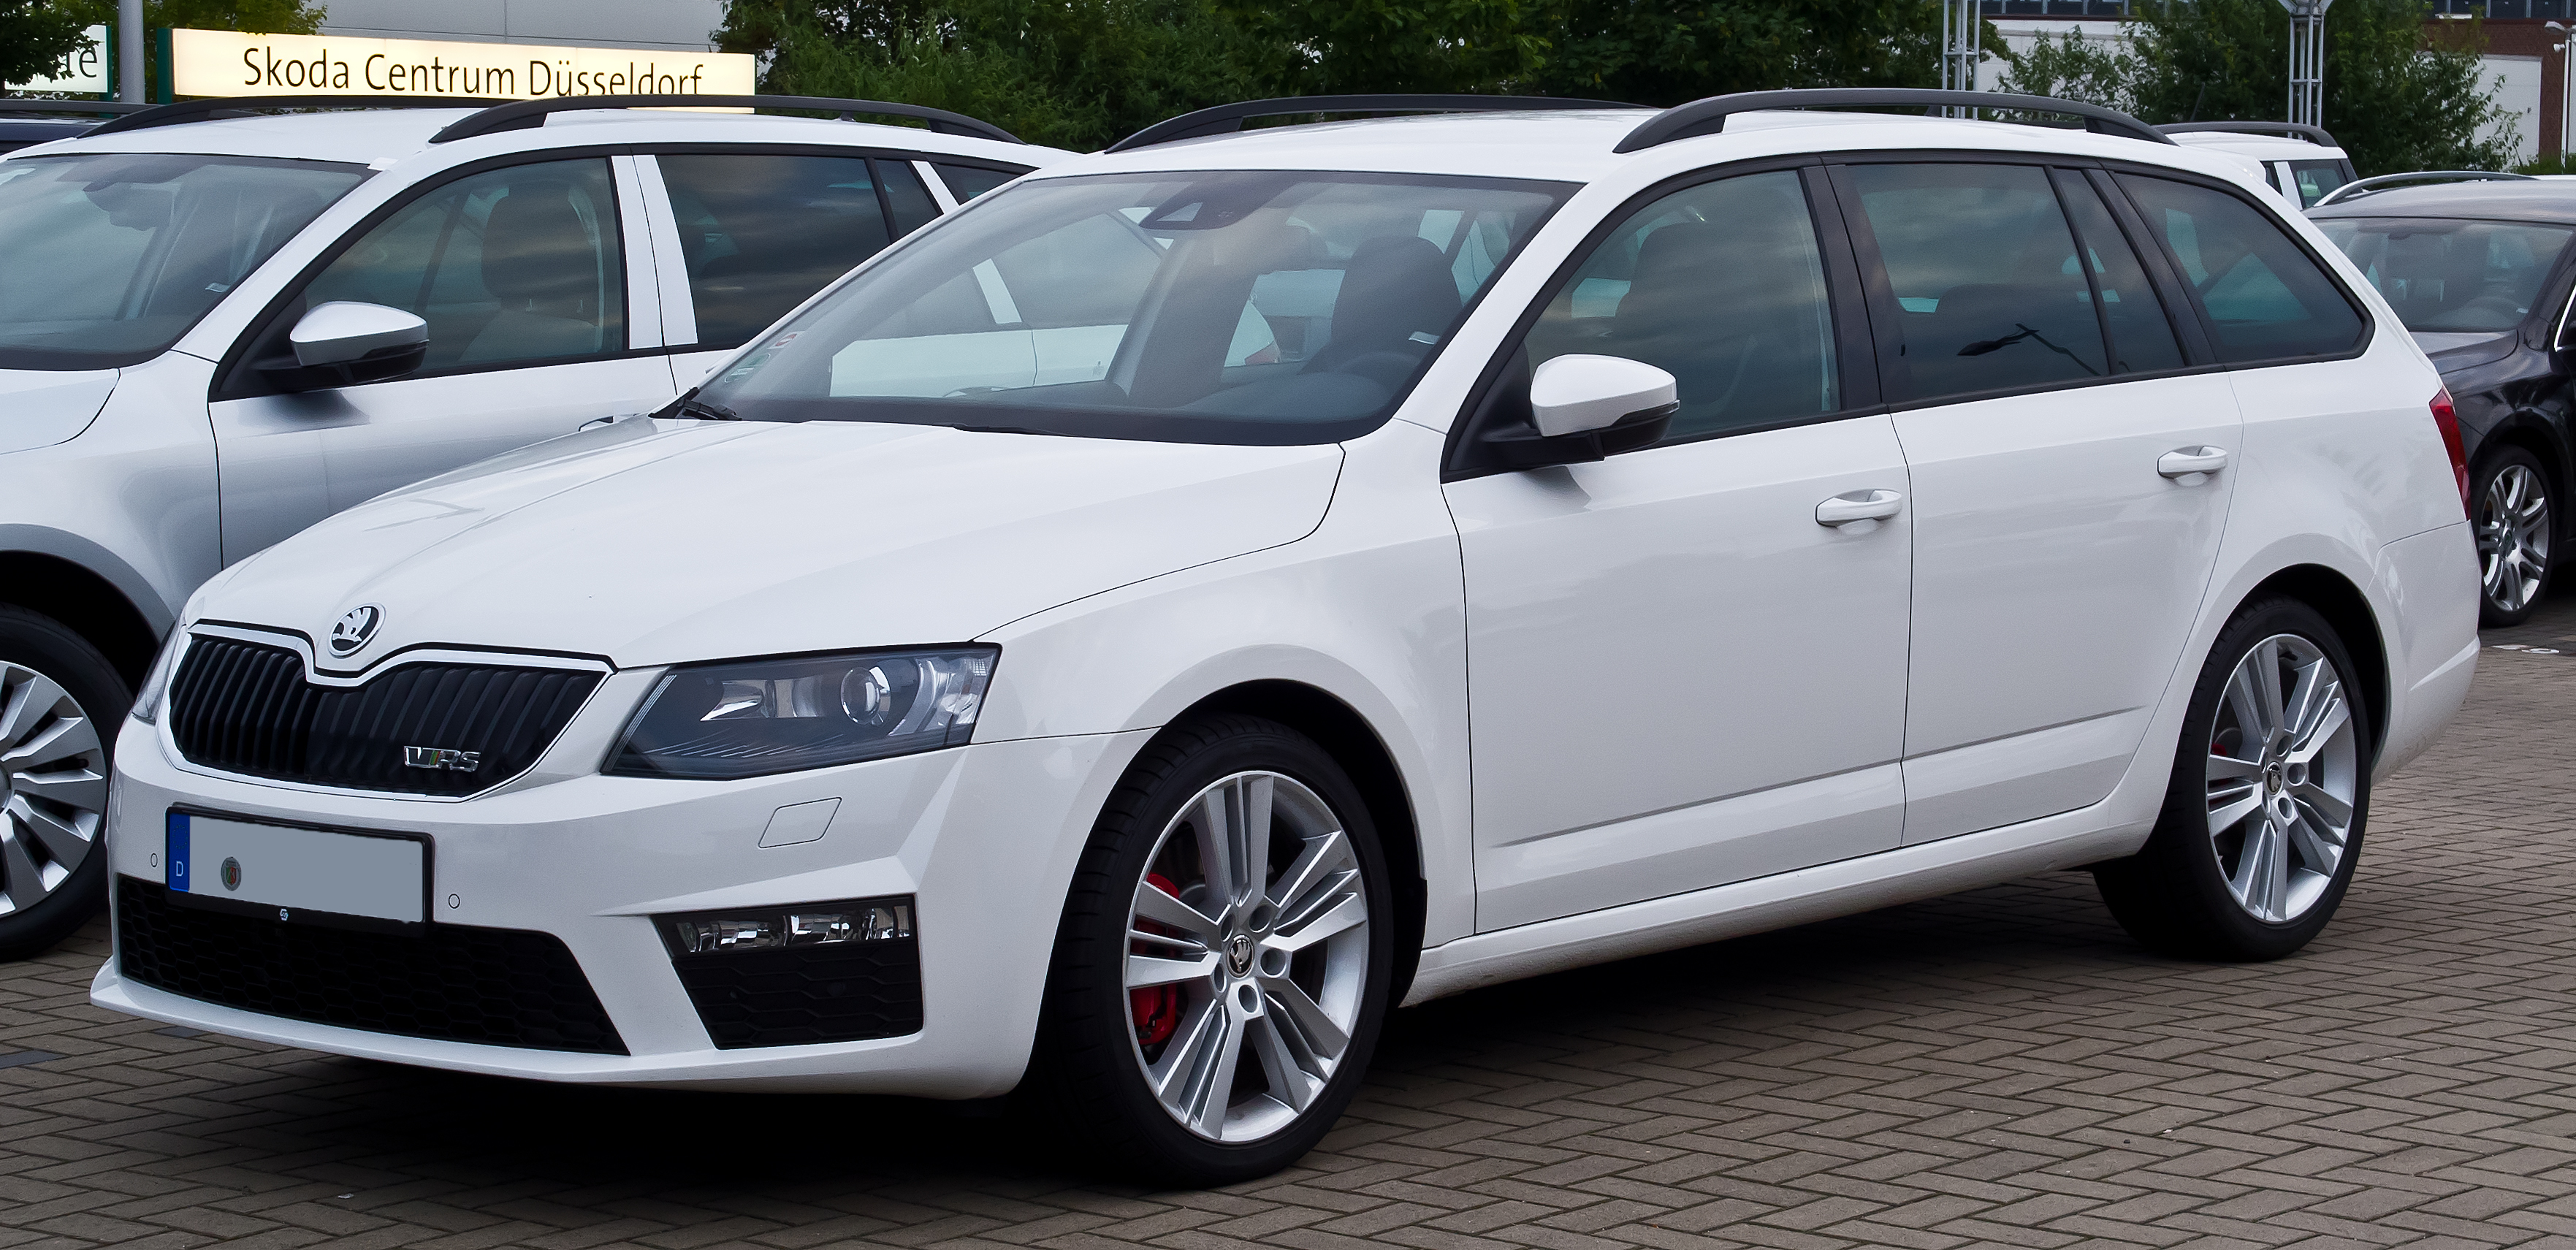 2014 skoda octavia iii pictures information and specs auto. Black Bedroom Furniture Sets. Home Design Ideas